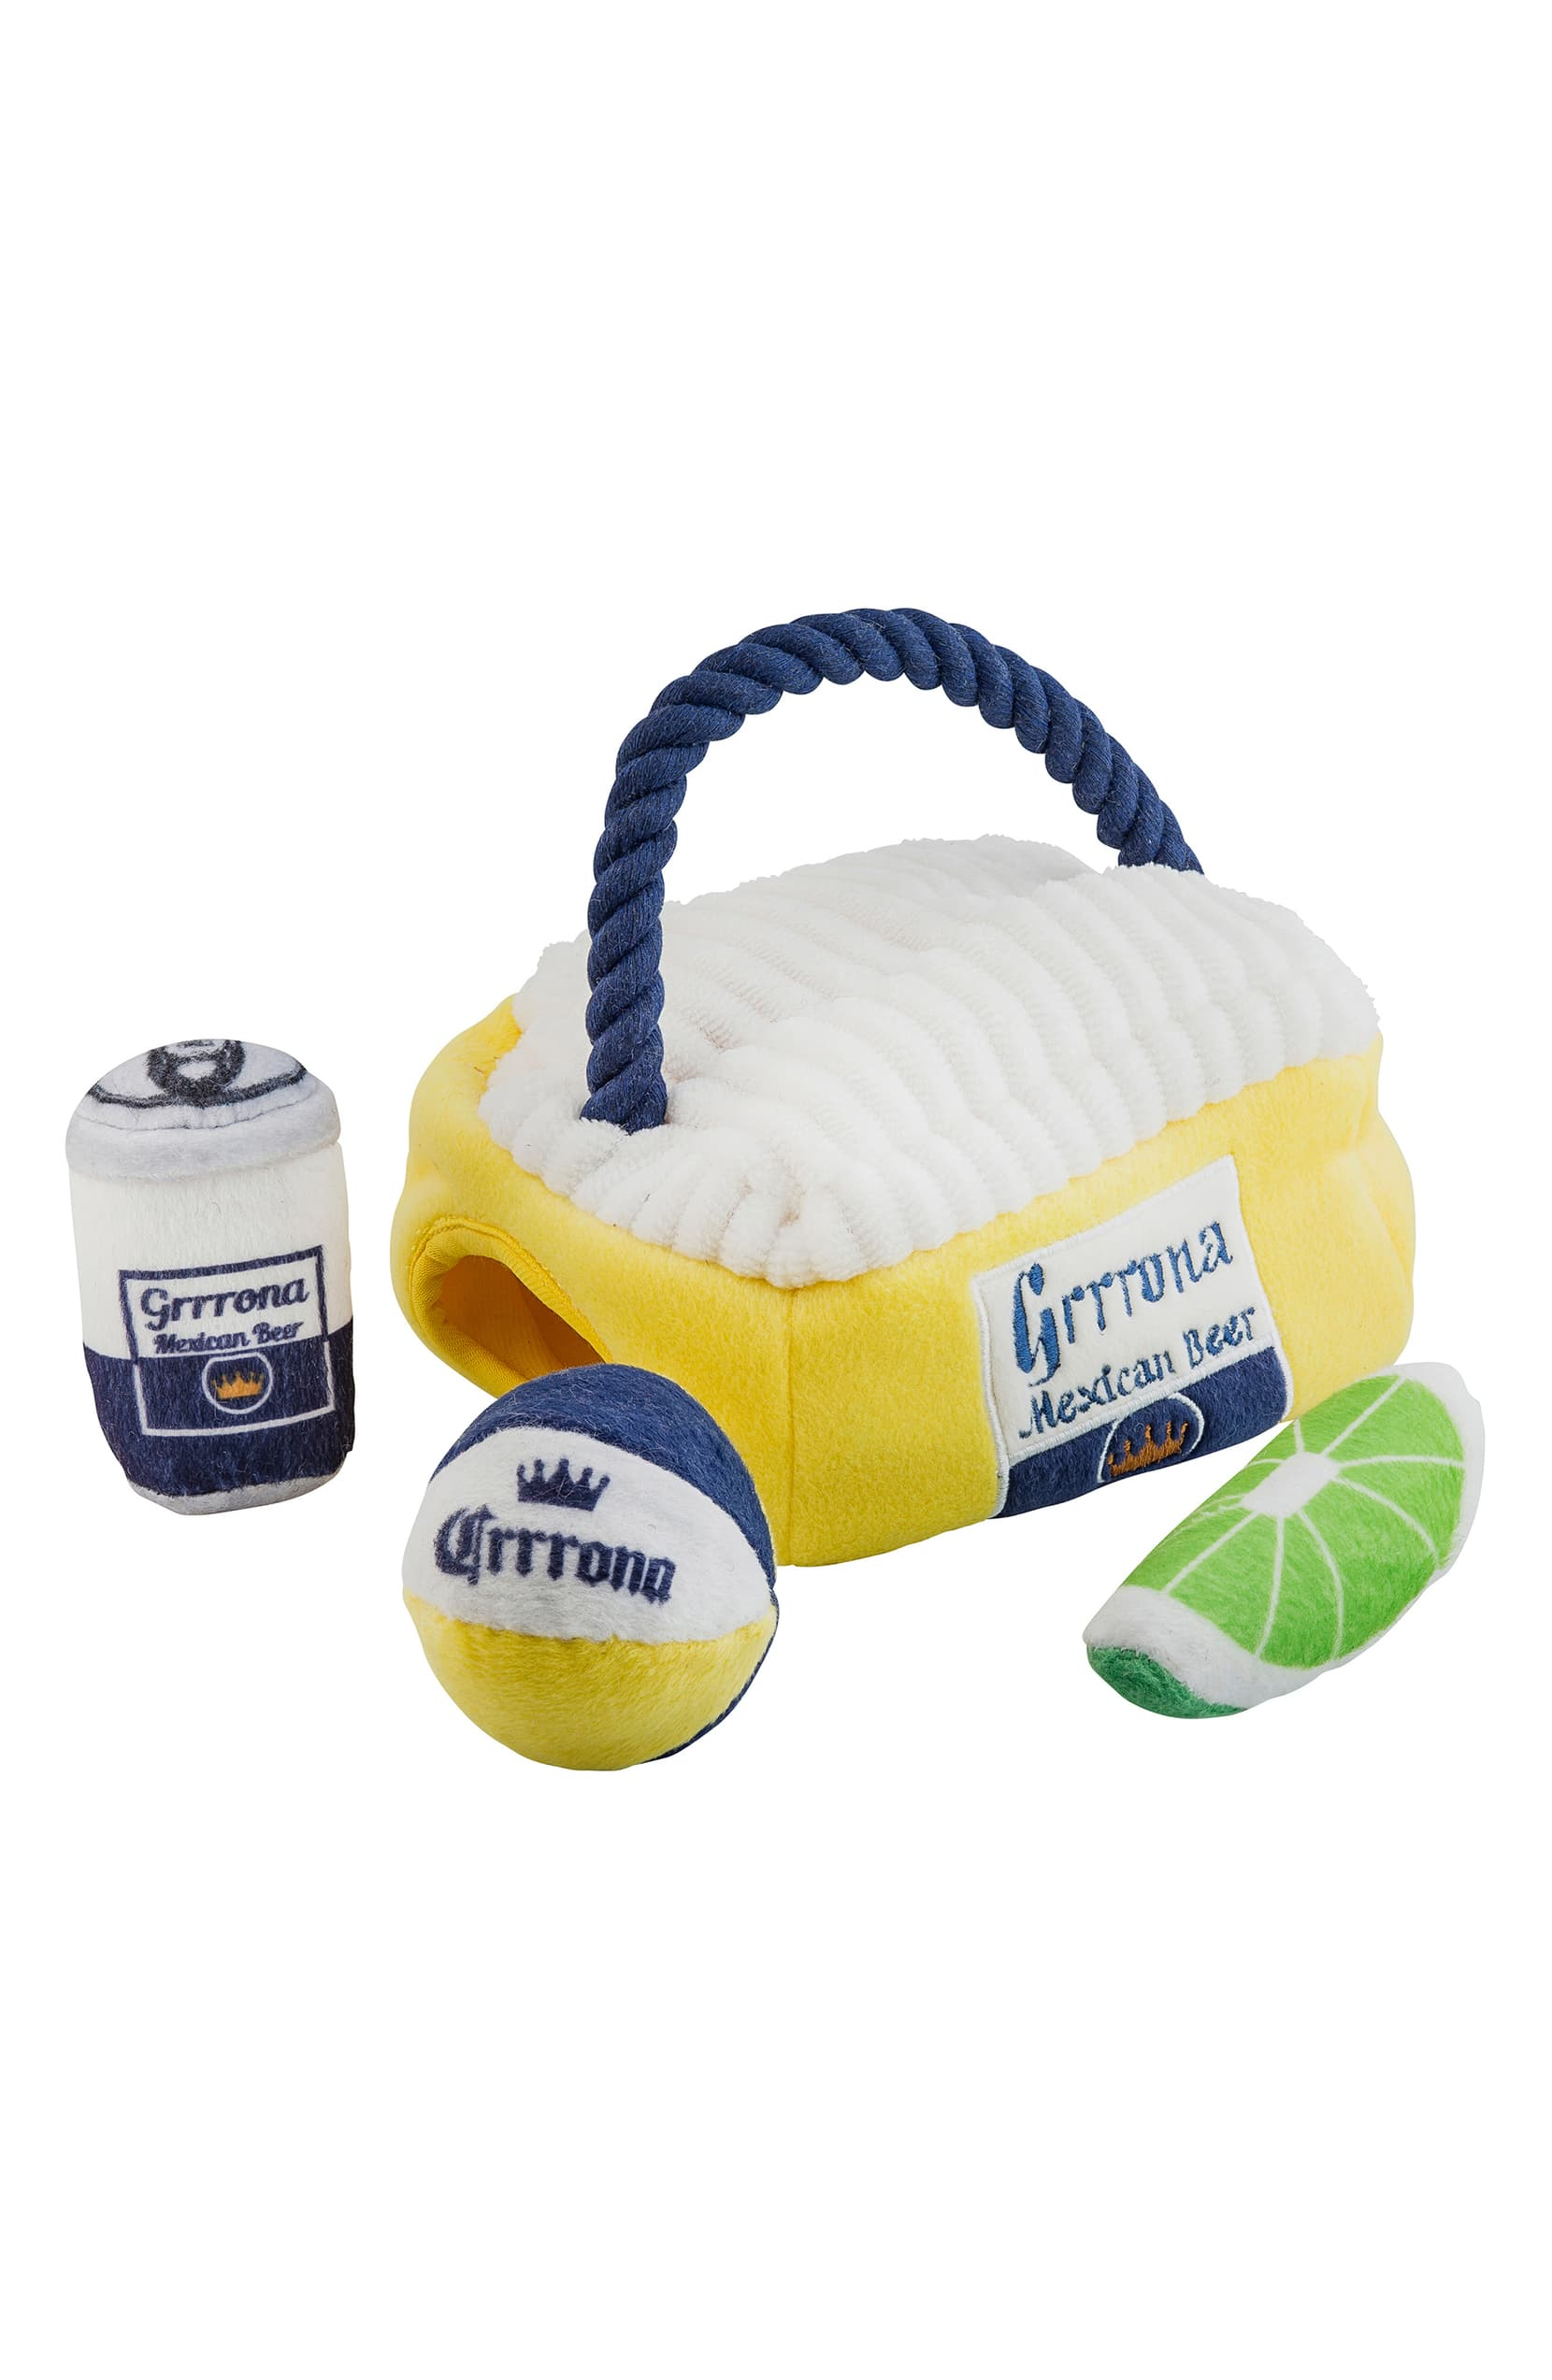 "<a  href=""https://shop.nordstrom.com/s/haute-diggity-dog-grrrona-beach-cooler-dog-toy/5373835?origin=keywordsearch-personalizedsort&breadcrumb=Home%2FAll%20Results&color=yellow%20multi"" target=""_blank"" title=""https://shop.nordstrom.com/s/haute-diggity-dog-grrrona-beach-cooler-dog-toy/5373835?origin=keywordsearch-personalizedsort&breadcrumb=Home%2FAll%20Results&color=yellow%20multi"">Grrrona Beach Cooler Dog Toy by HAUTE DIGGITY DOG ($25.95)</a>{&nbsp;}Your pup - doubtless already rocking an enviable play-hard, rest-hard beach vibe—will love this interactive hide-and-seek beach cooler toy. (Image: Nordstrom)"